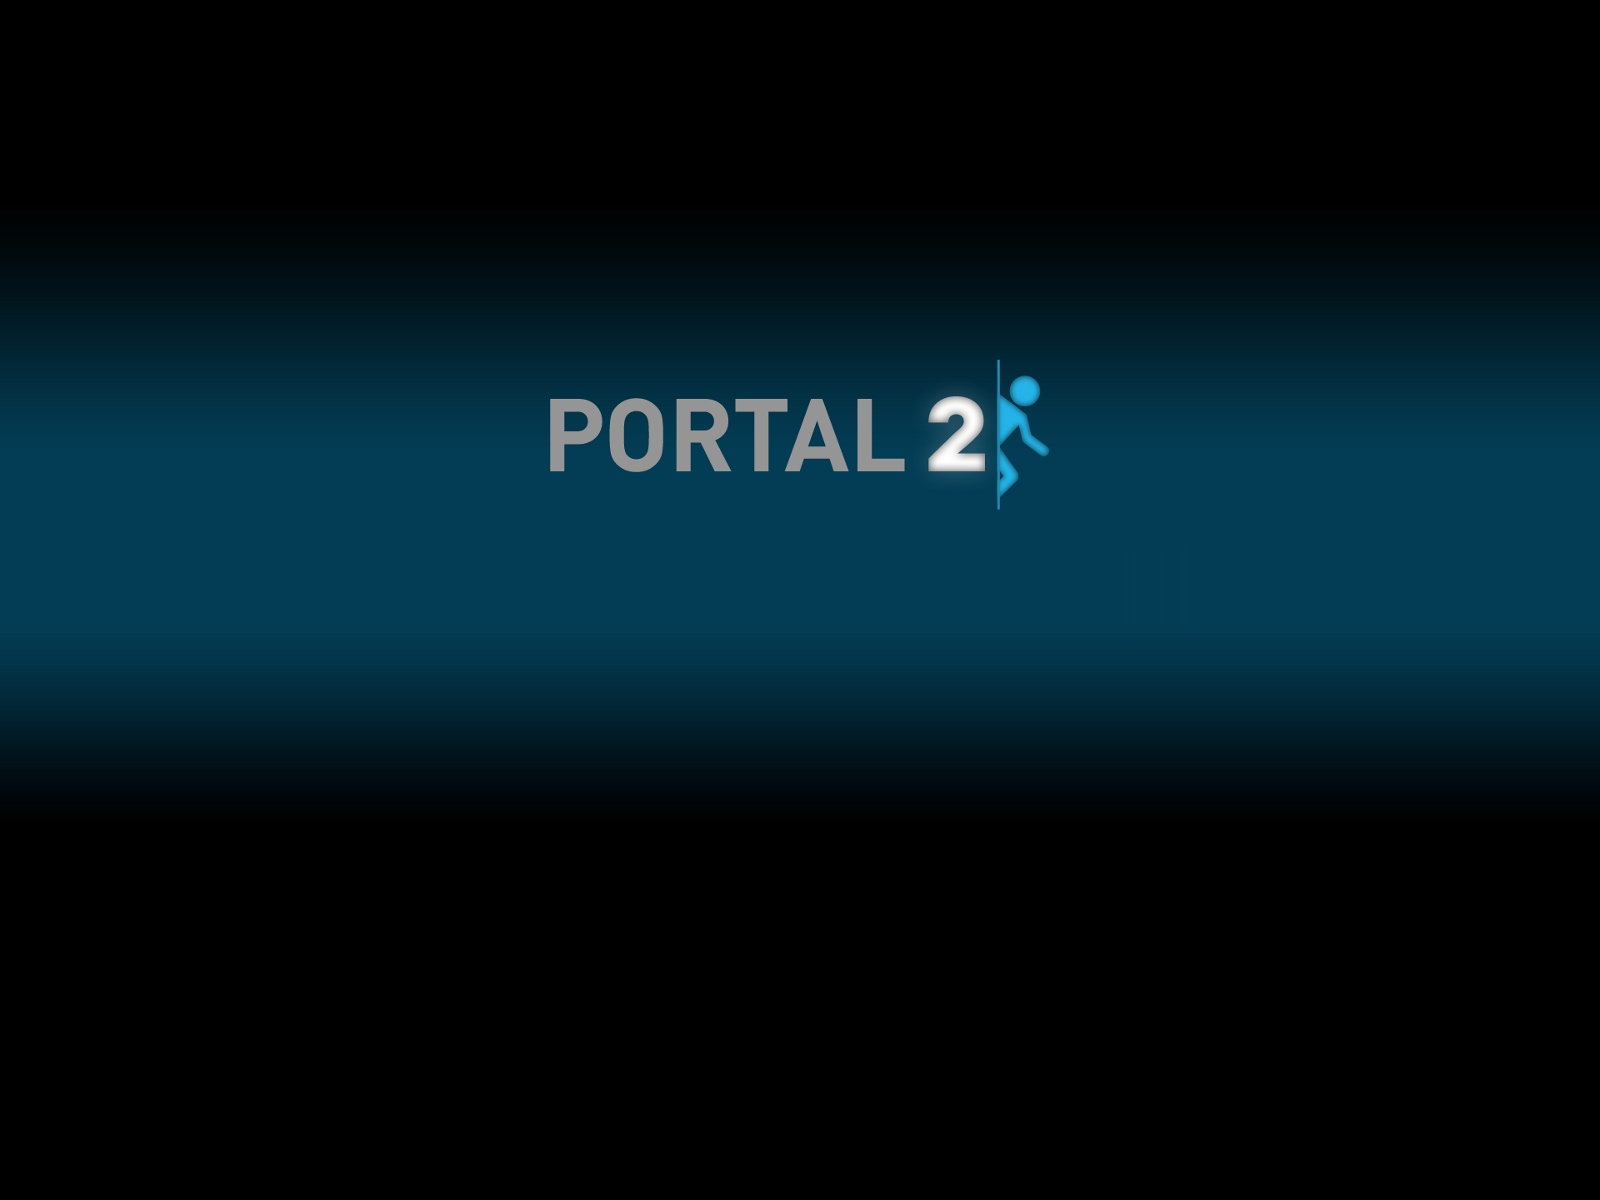 Amazing Wallpaper Minecraft Windows 7 - portal-21  Image_782170.jpg